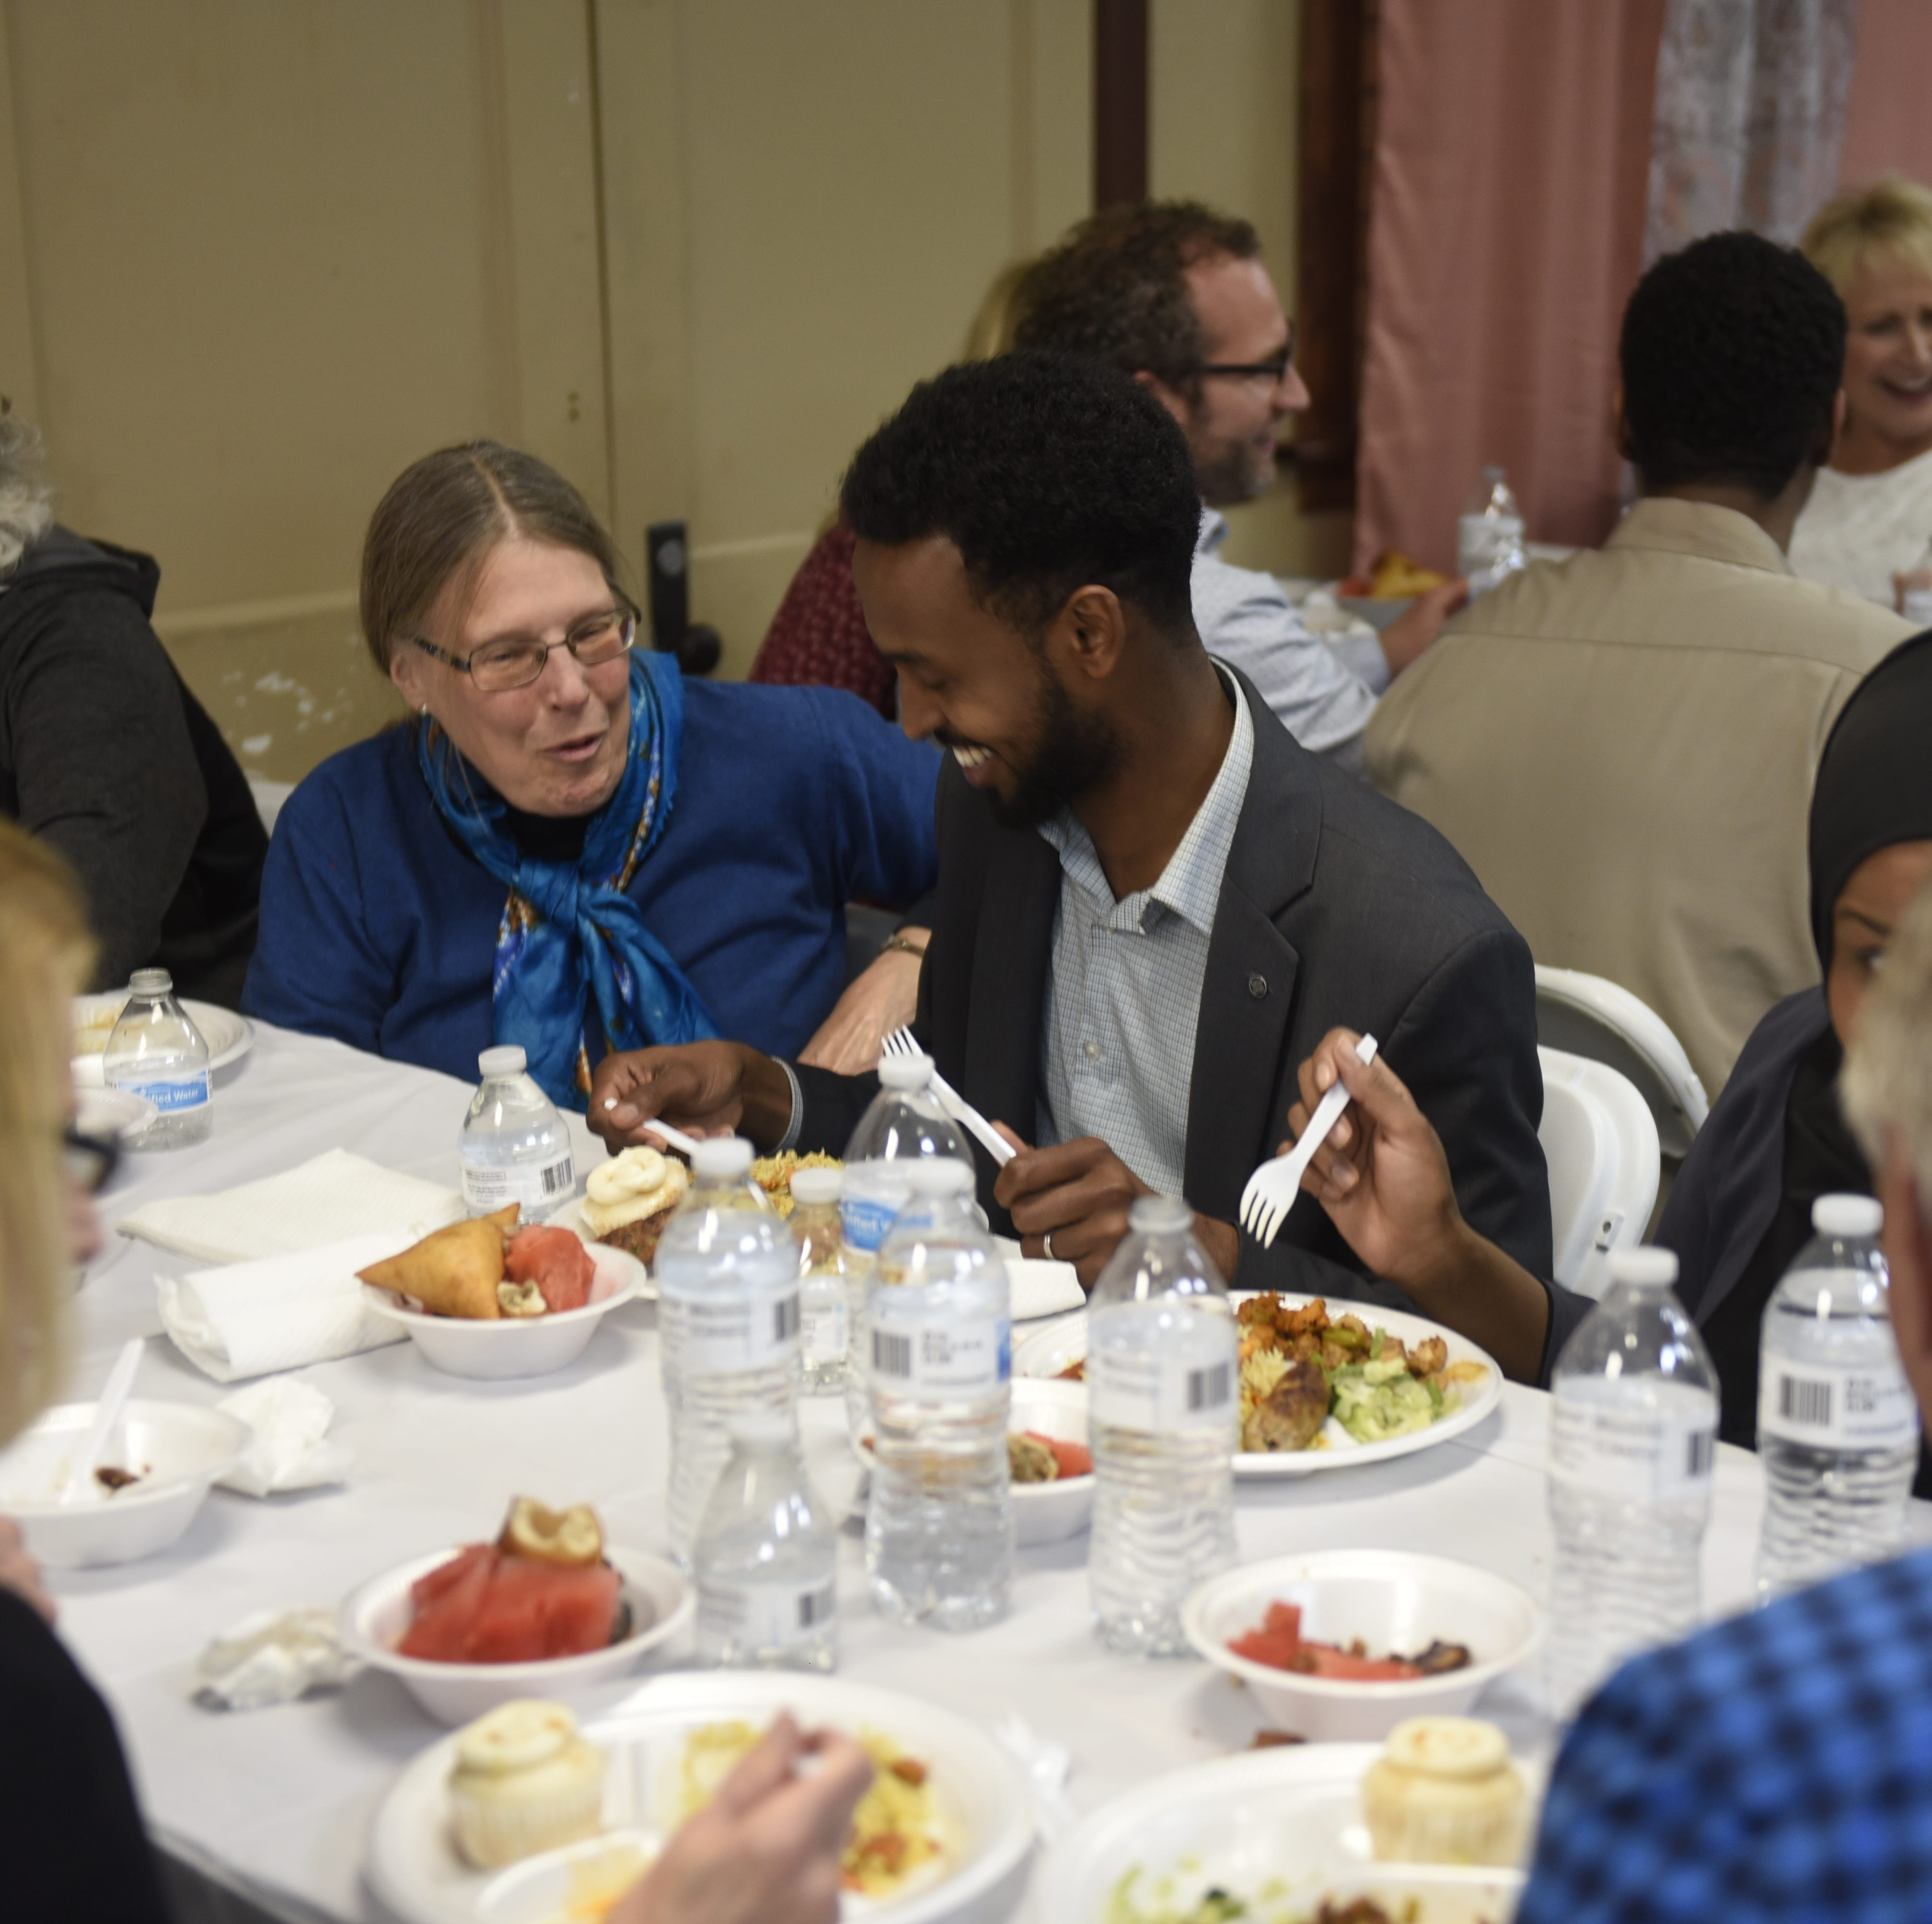 St. Cloud iftar brings community together to break the fast